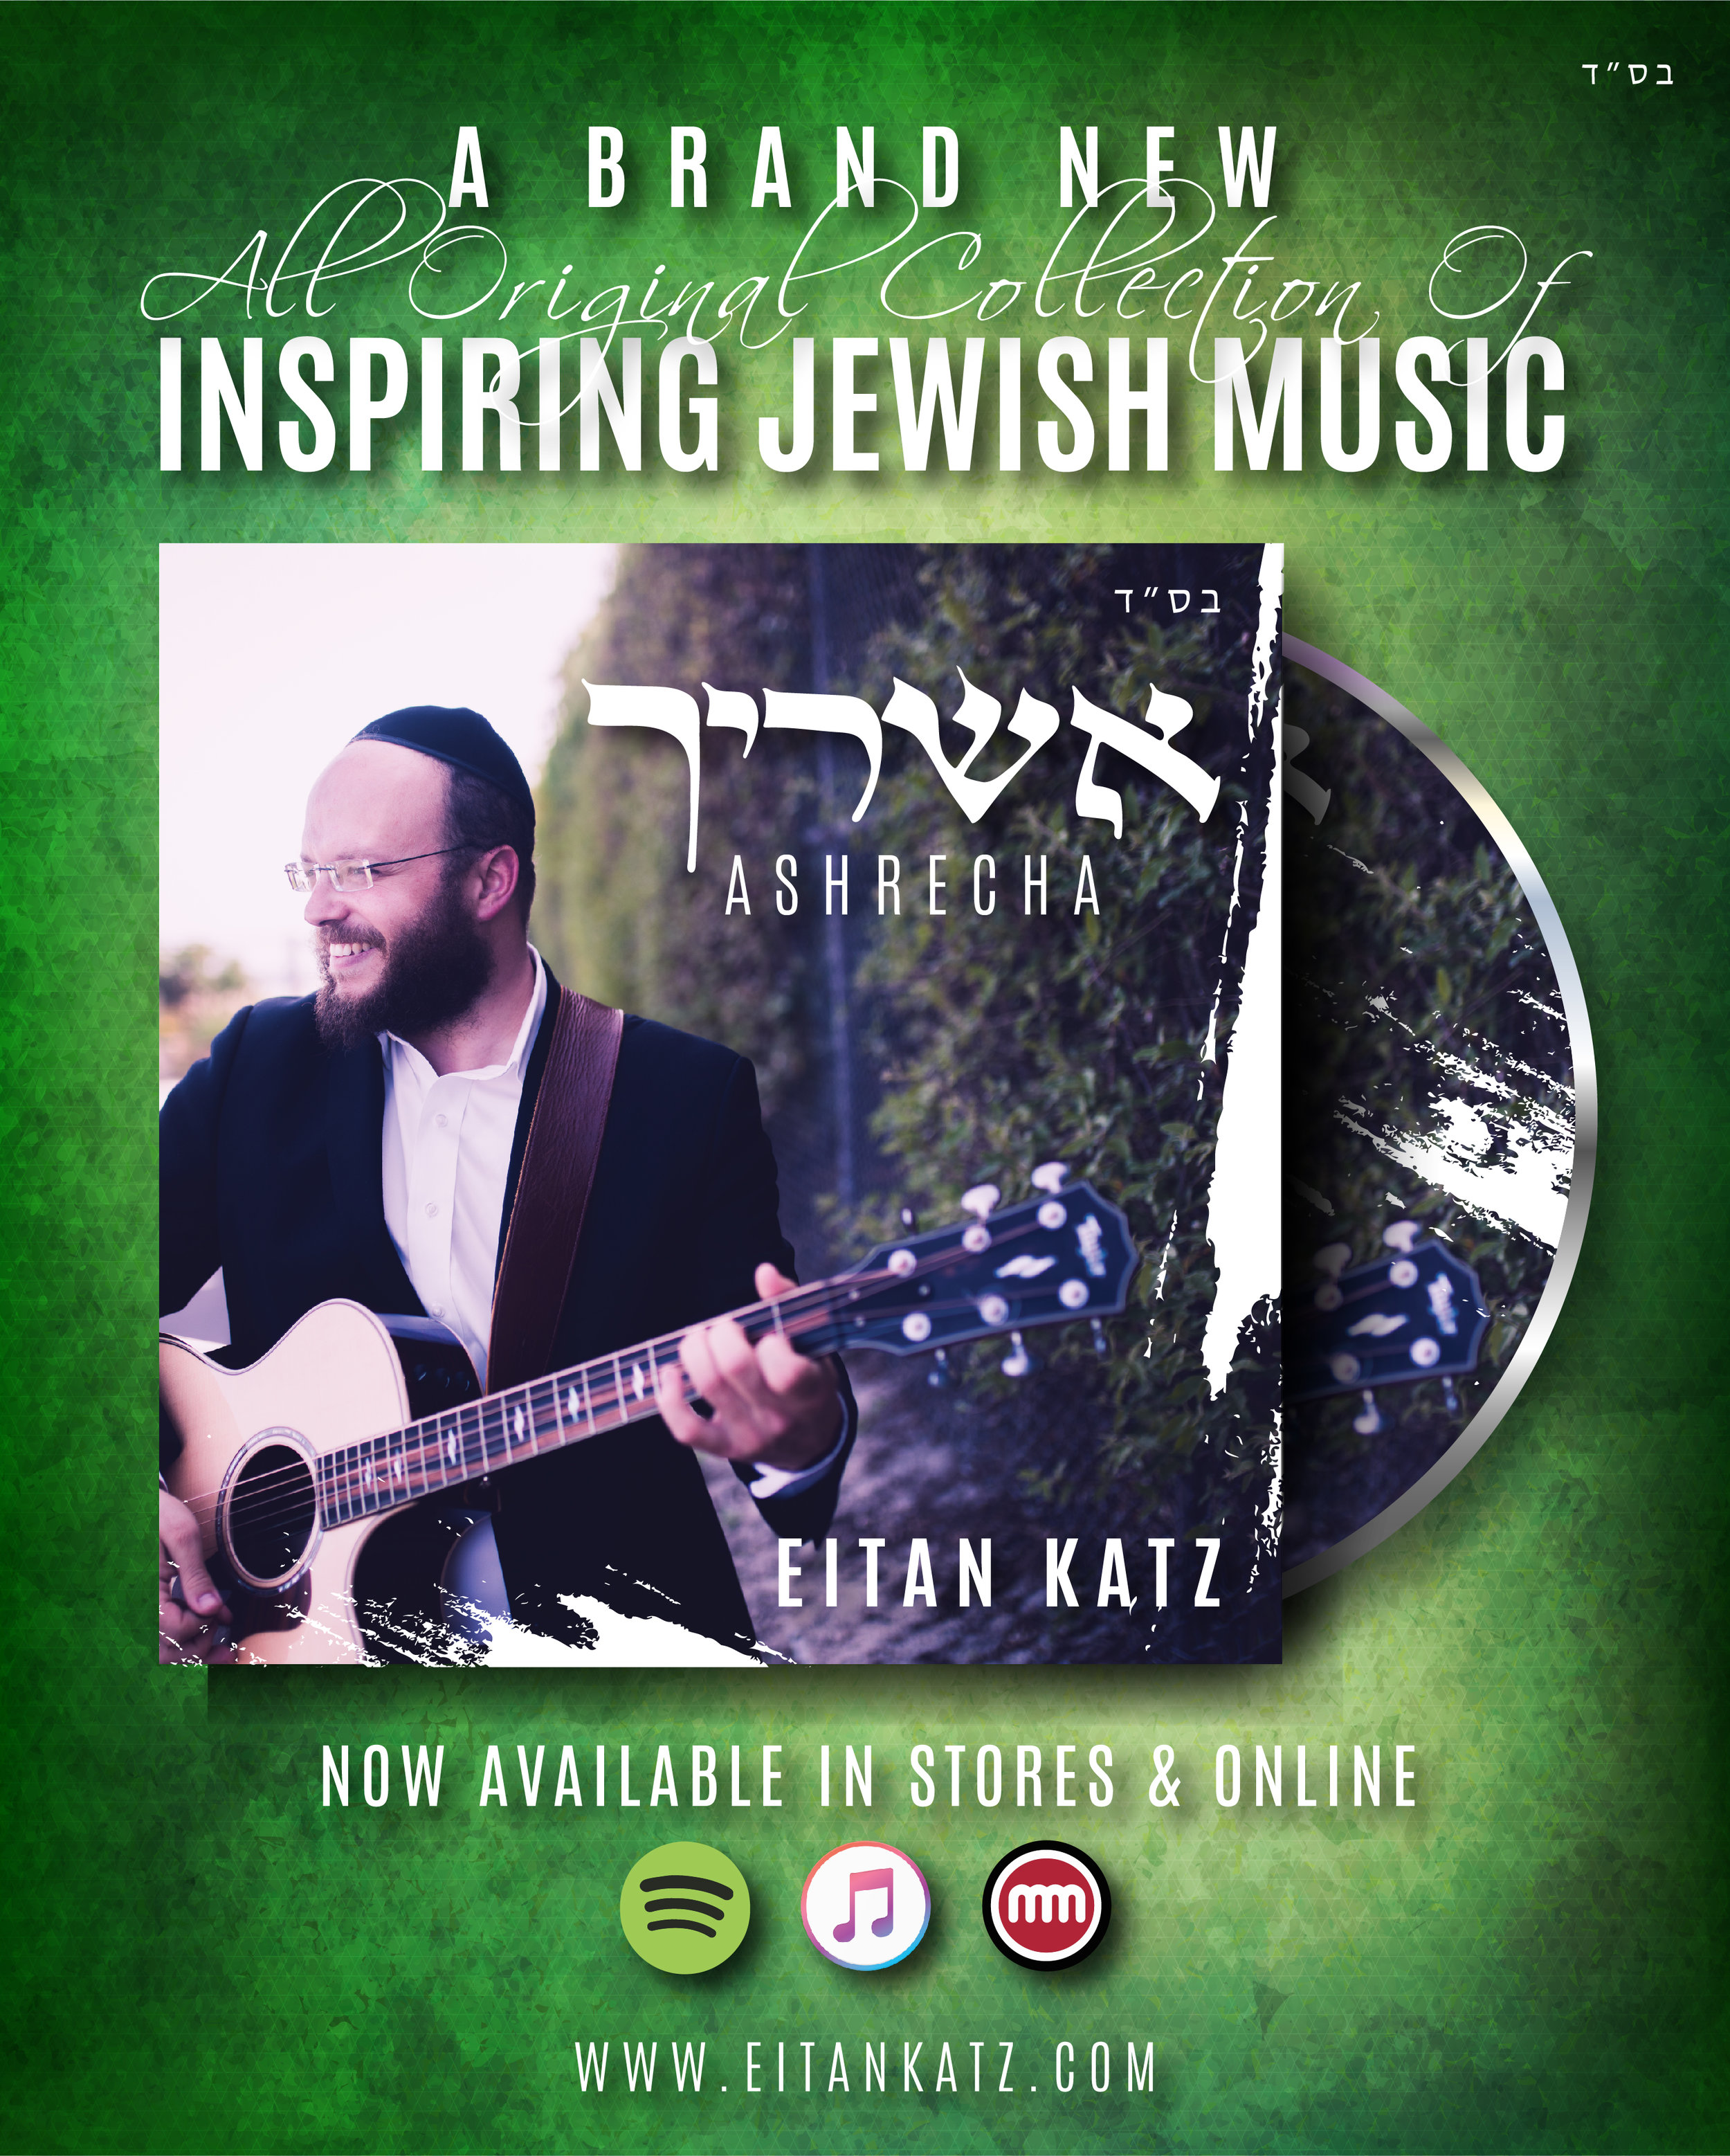 Ashrecha - Album Art and Promotional Materials, Eitan Katz